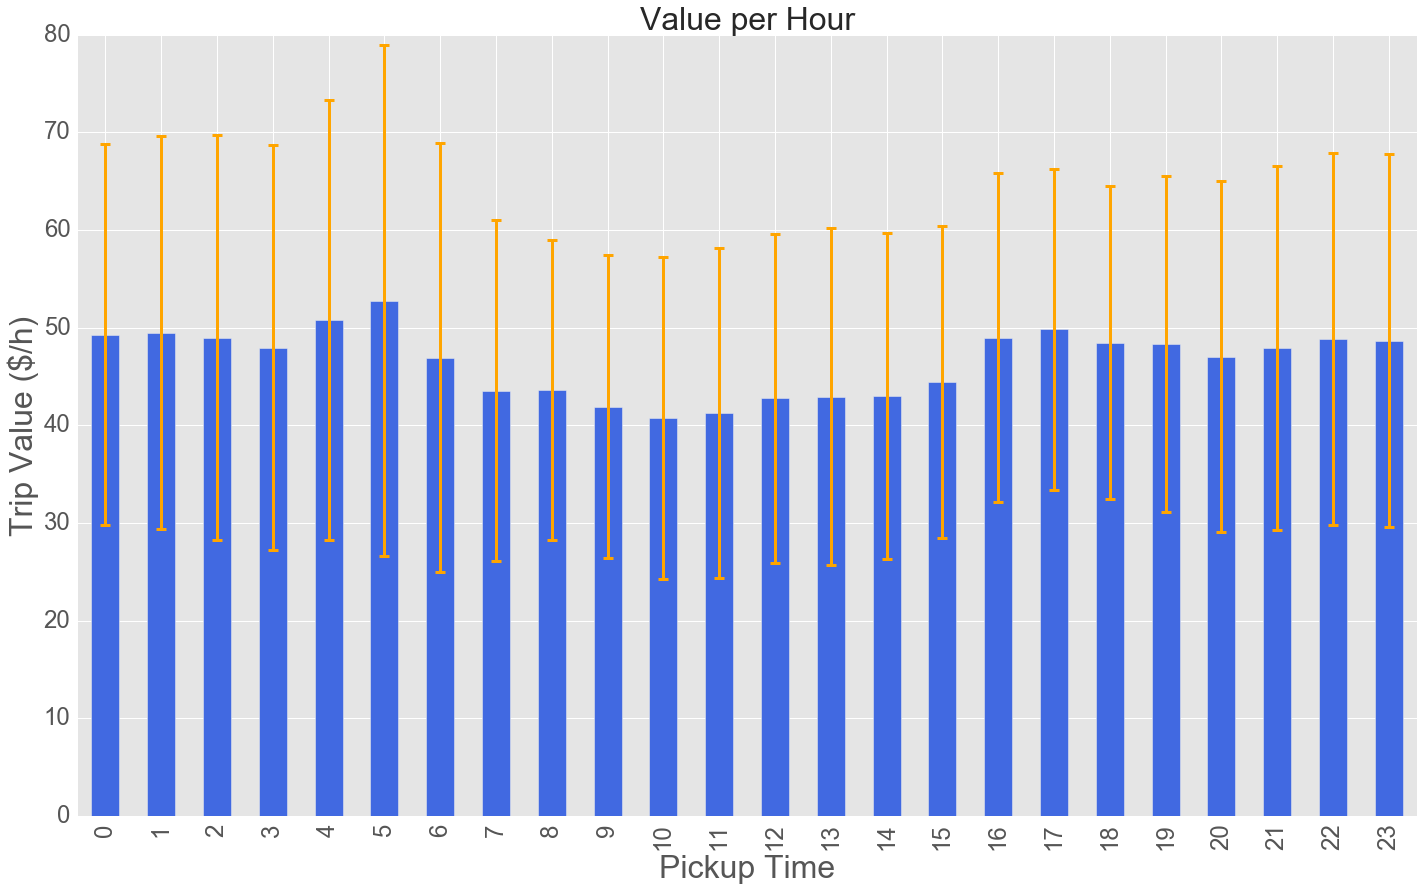 value per hour